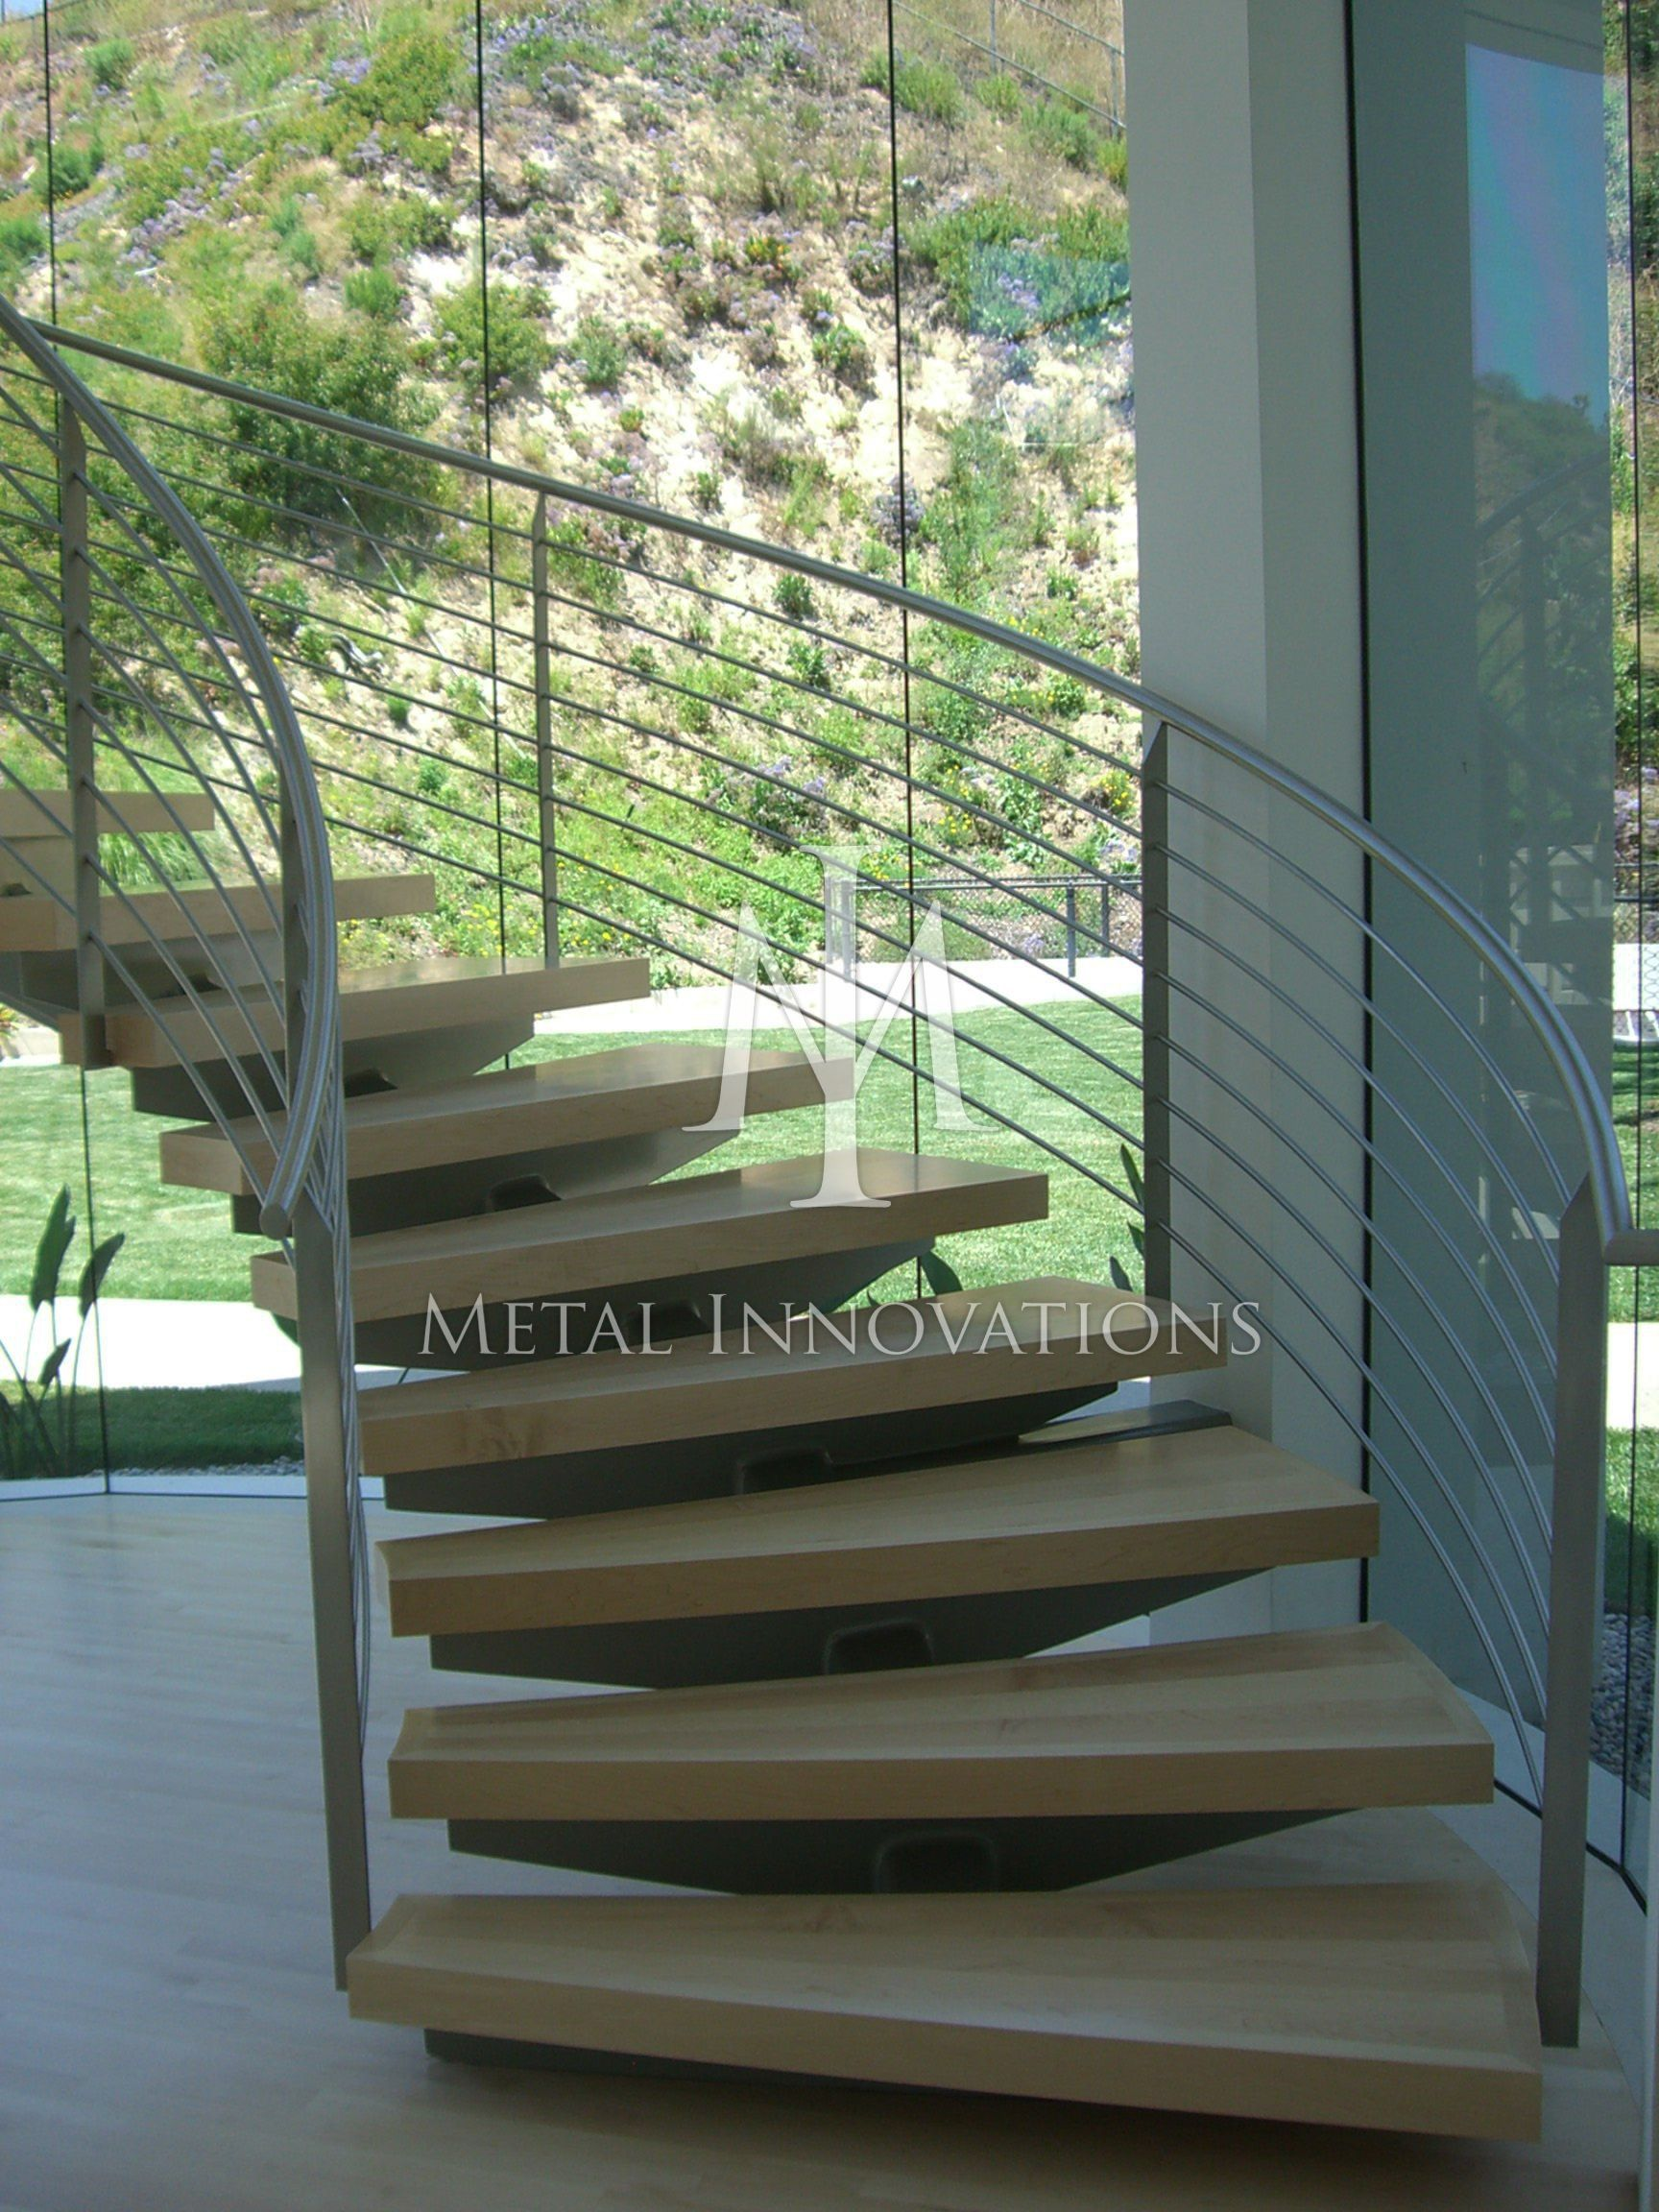 stair rails modern rails contemporary rails stainless steel rails aluminum rails cable rails glass rails wire rails modern balusters gates fences [ 1728 x 2304 Pixel ]